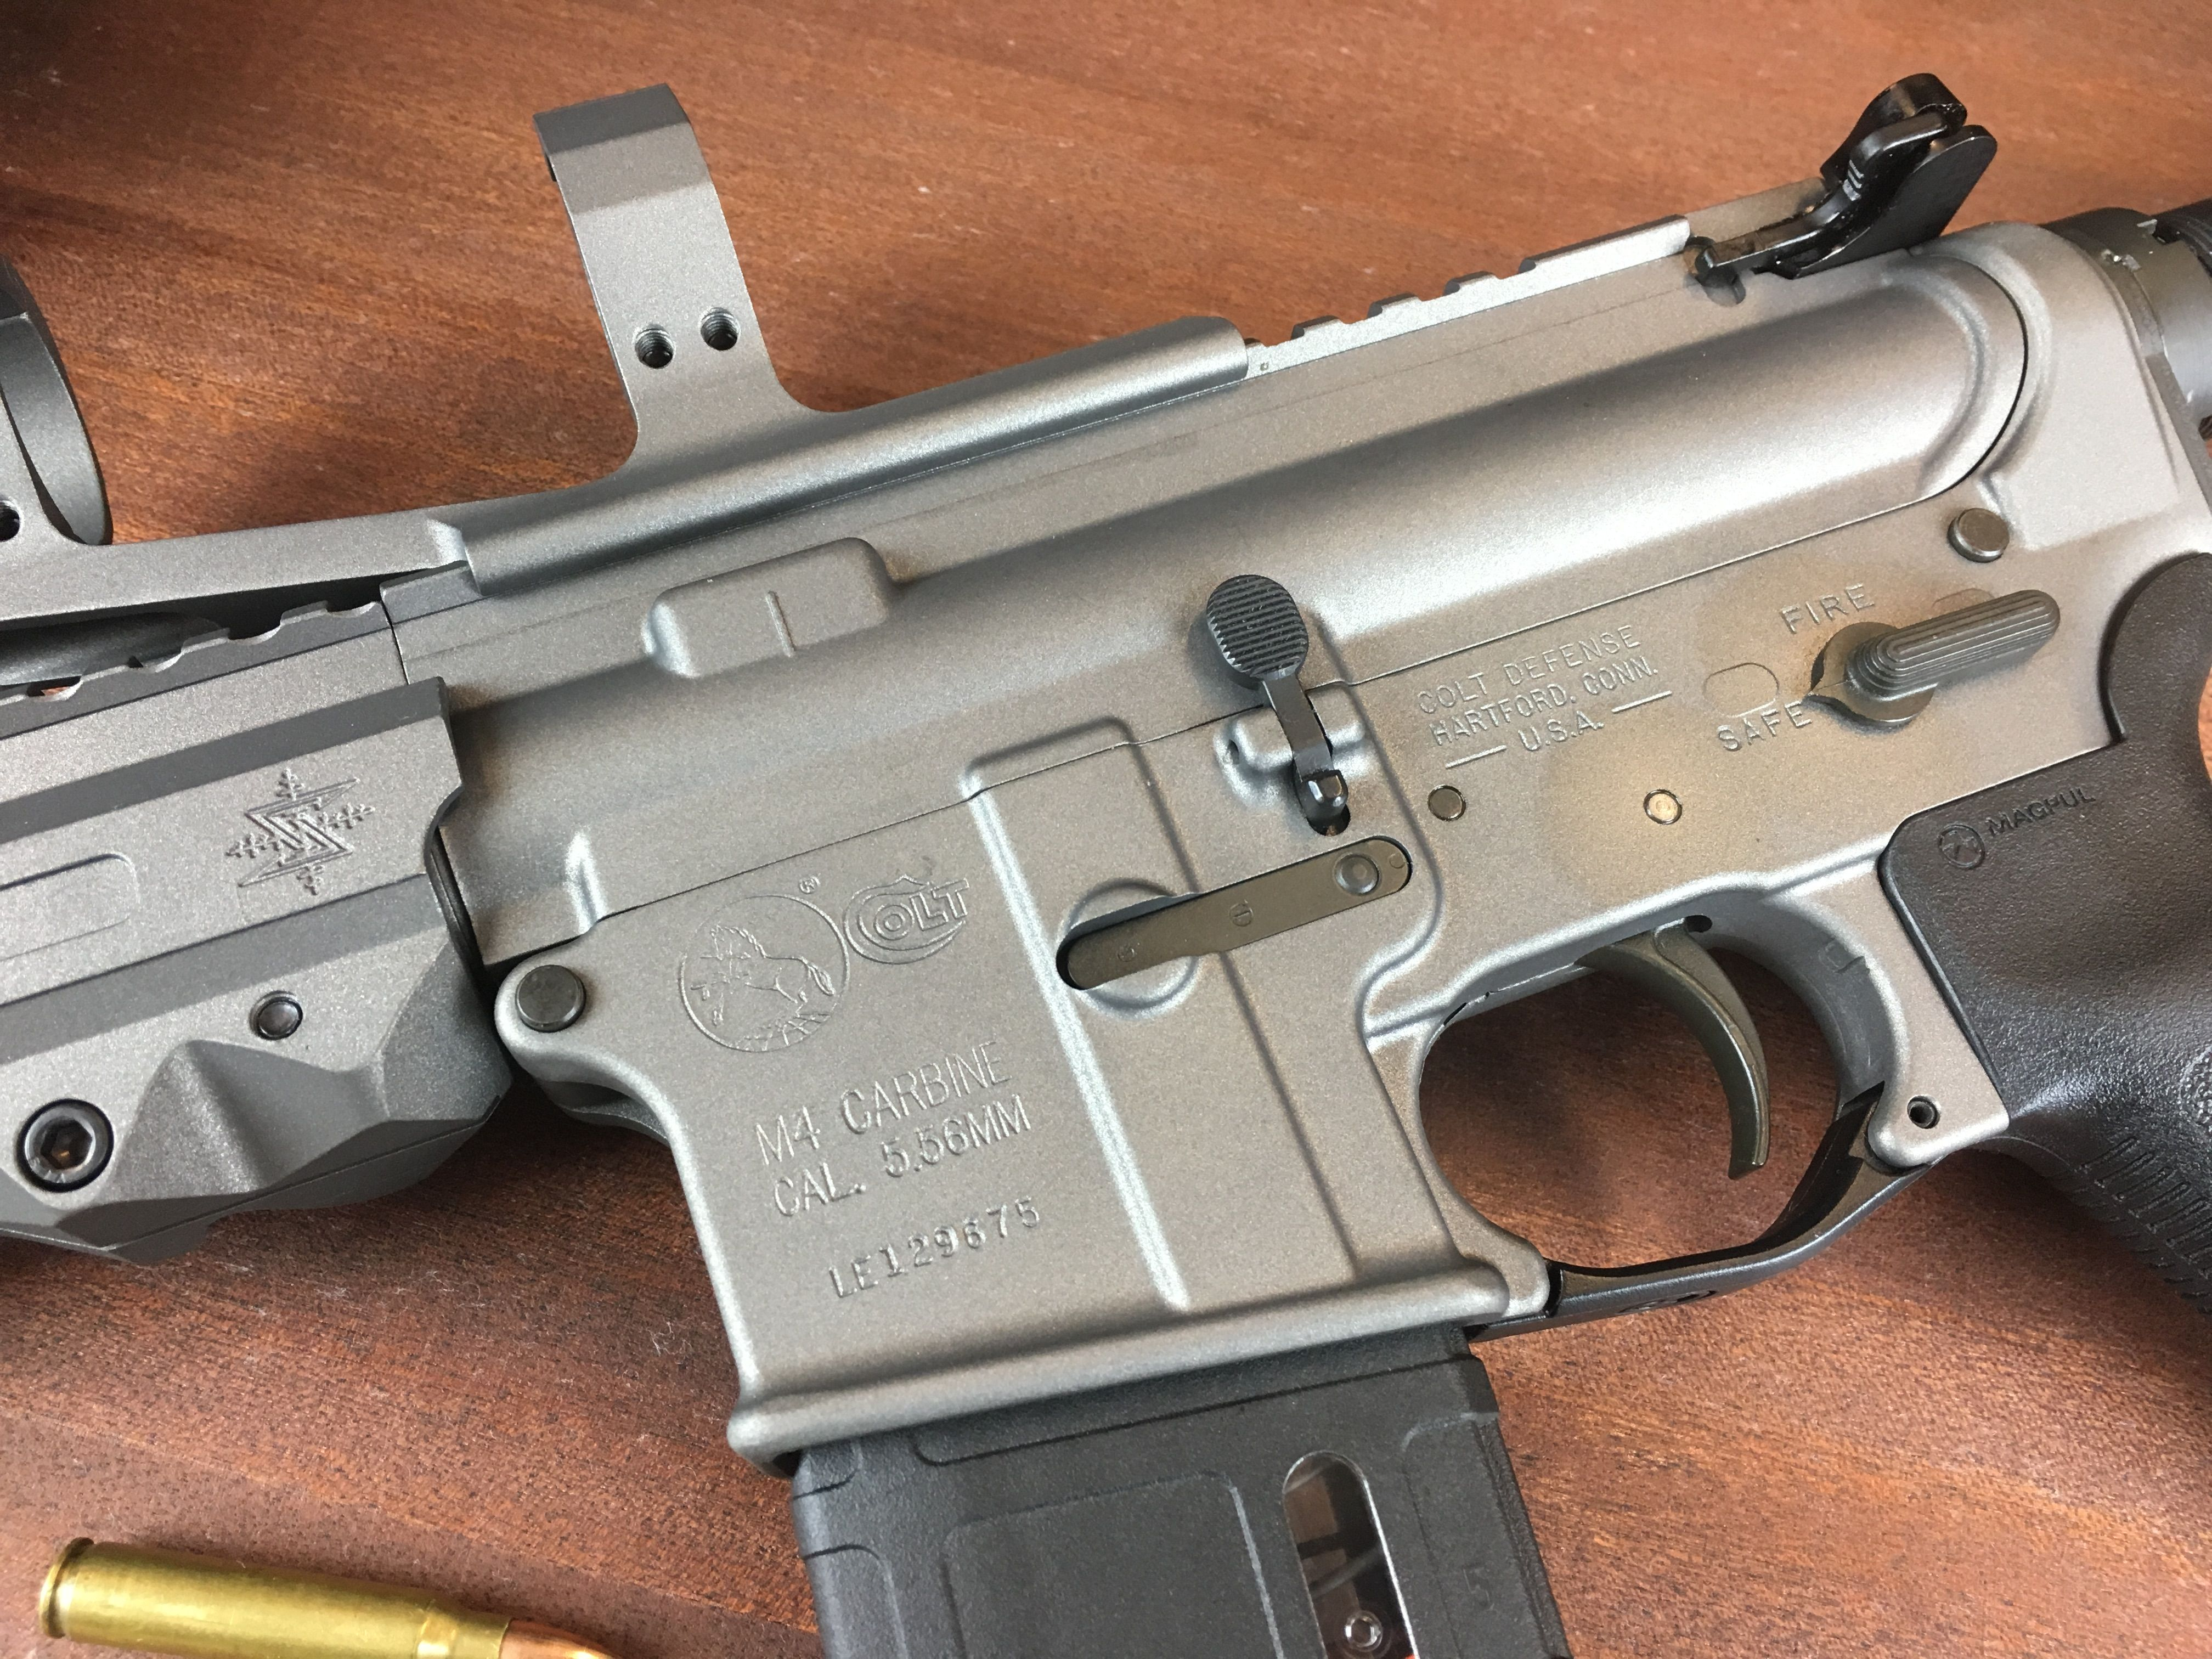 Pin by Richard Morris on Milwaukee GunSmith Cerakote | Pinterest